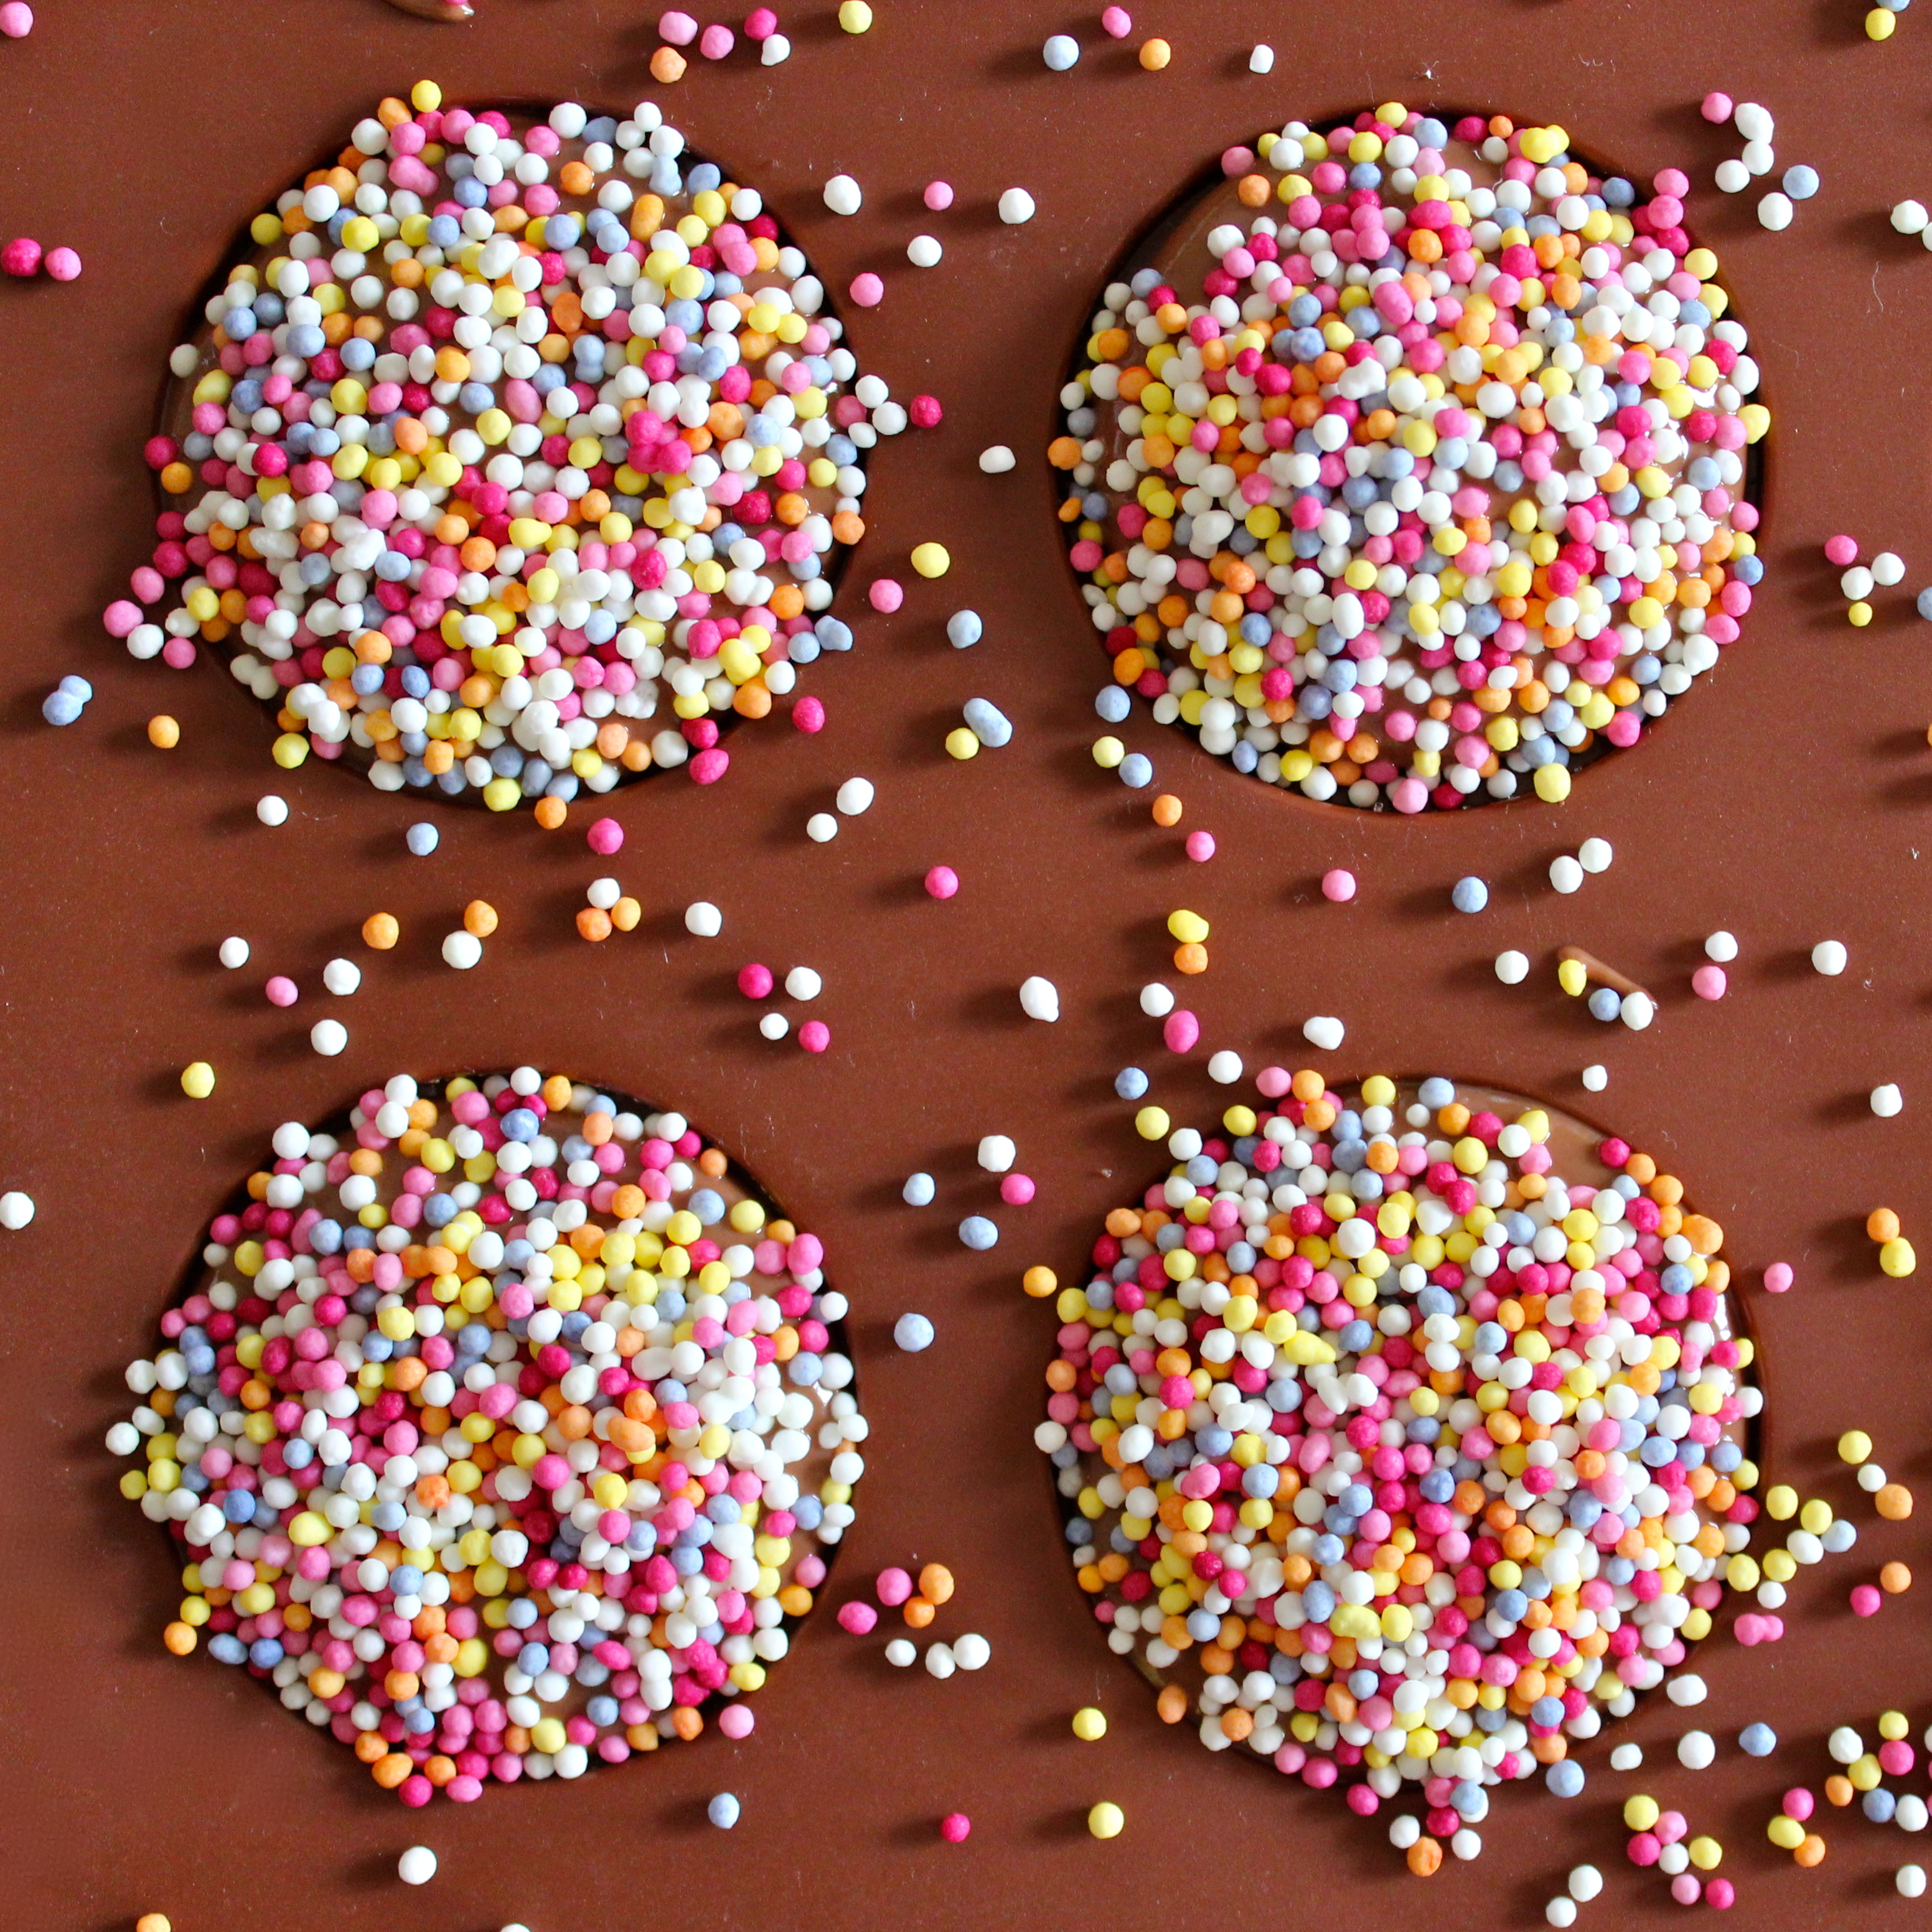 sprinkle the still gooey chocolate liberally with your candy sprinkles